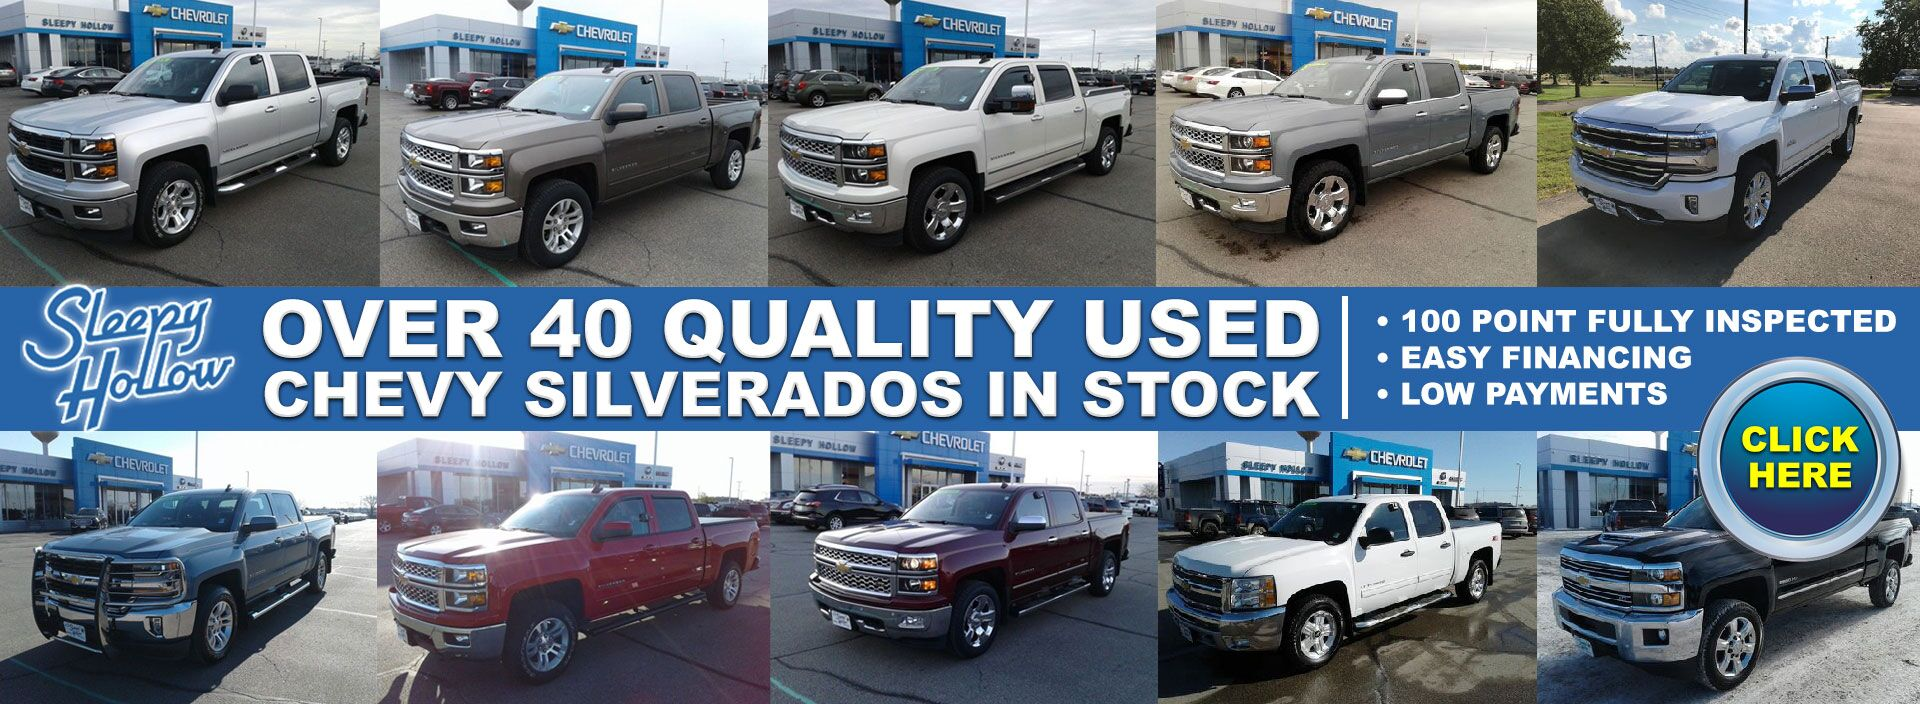 Used Chevy Silverados